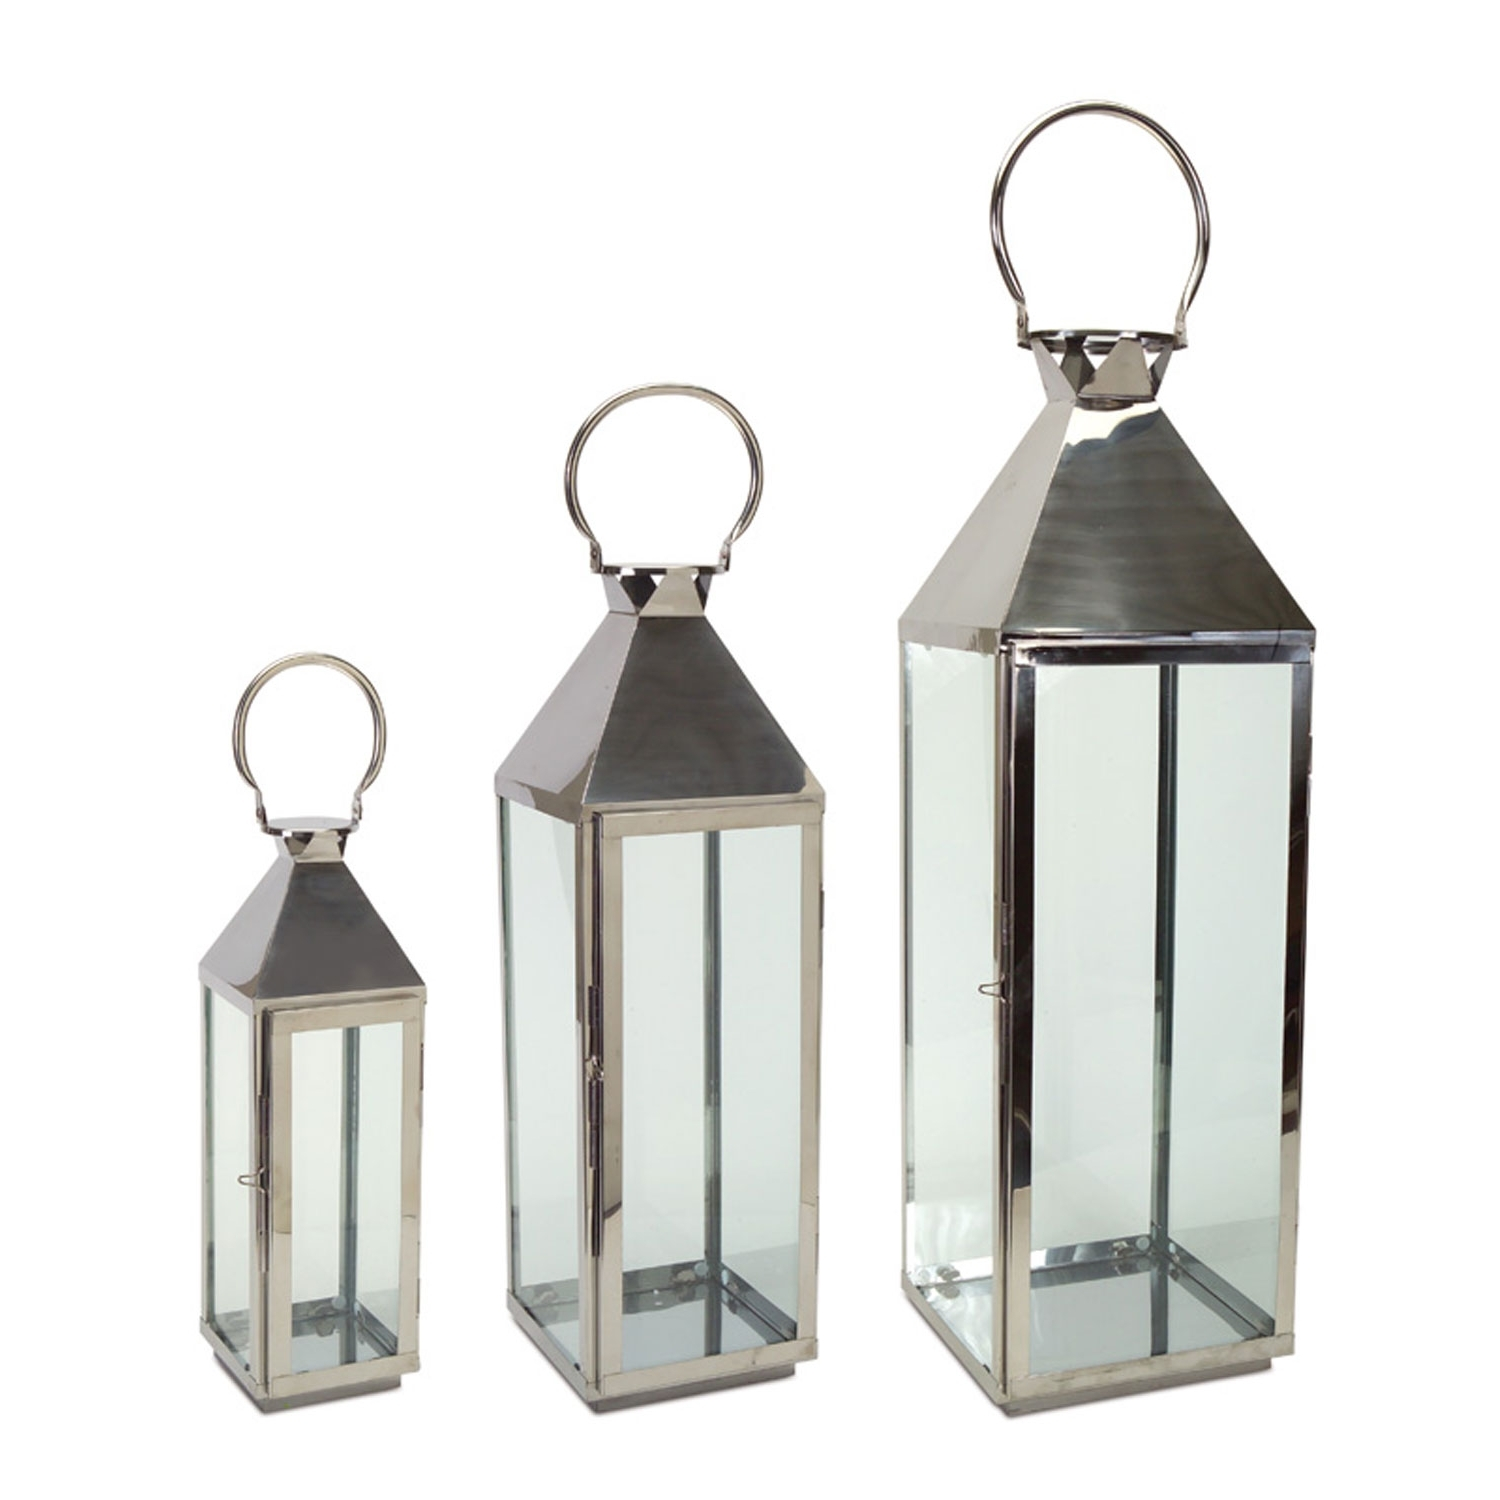 Most Popular Candle Lanterns, Outdoor Hanging Lanterns, Decorative On Sale Throughout Outdoor Hanging Lanterns With Candles (View 4 of 20)